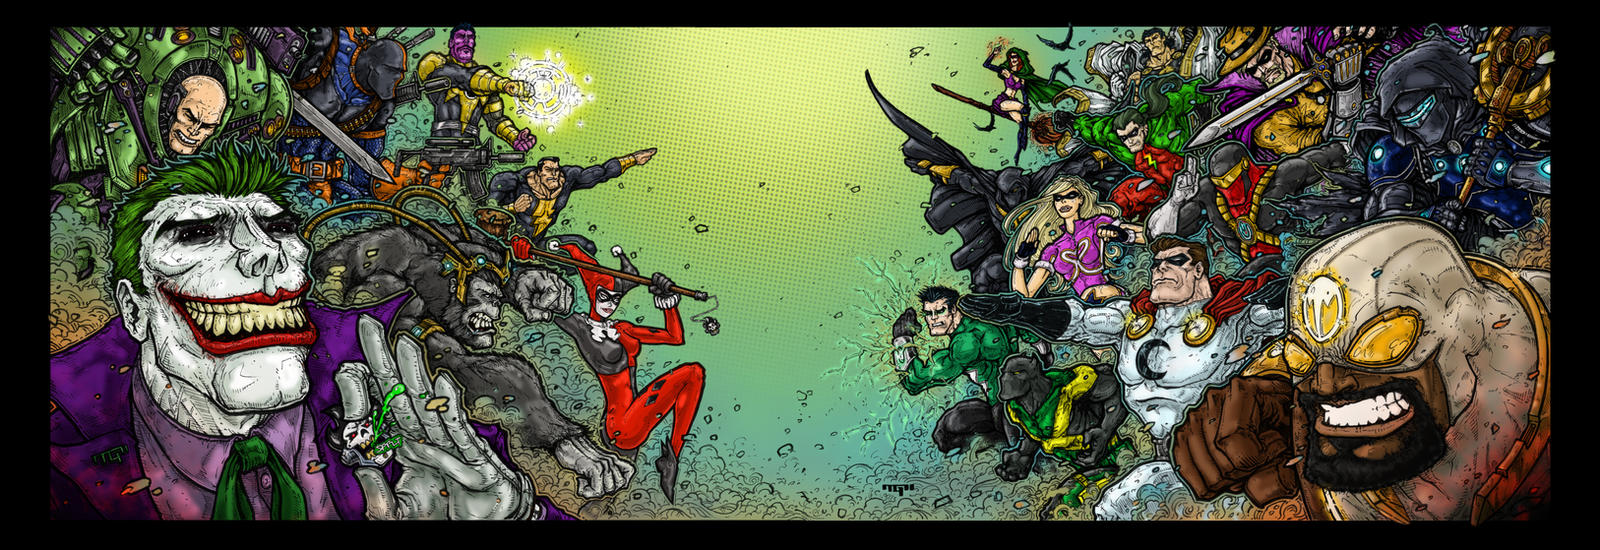 peacekeepers_vs__dc_villains__by_taylorg